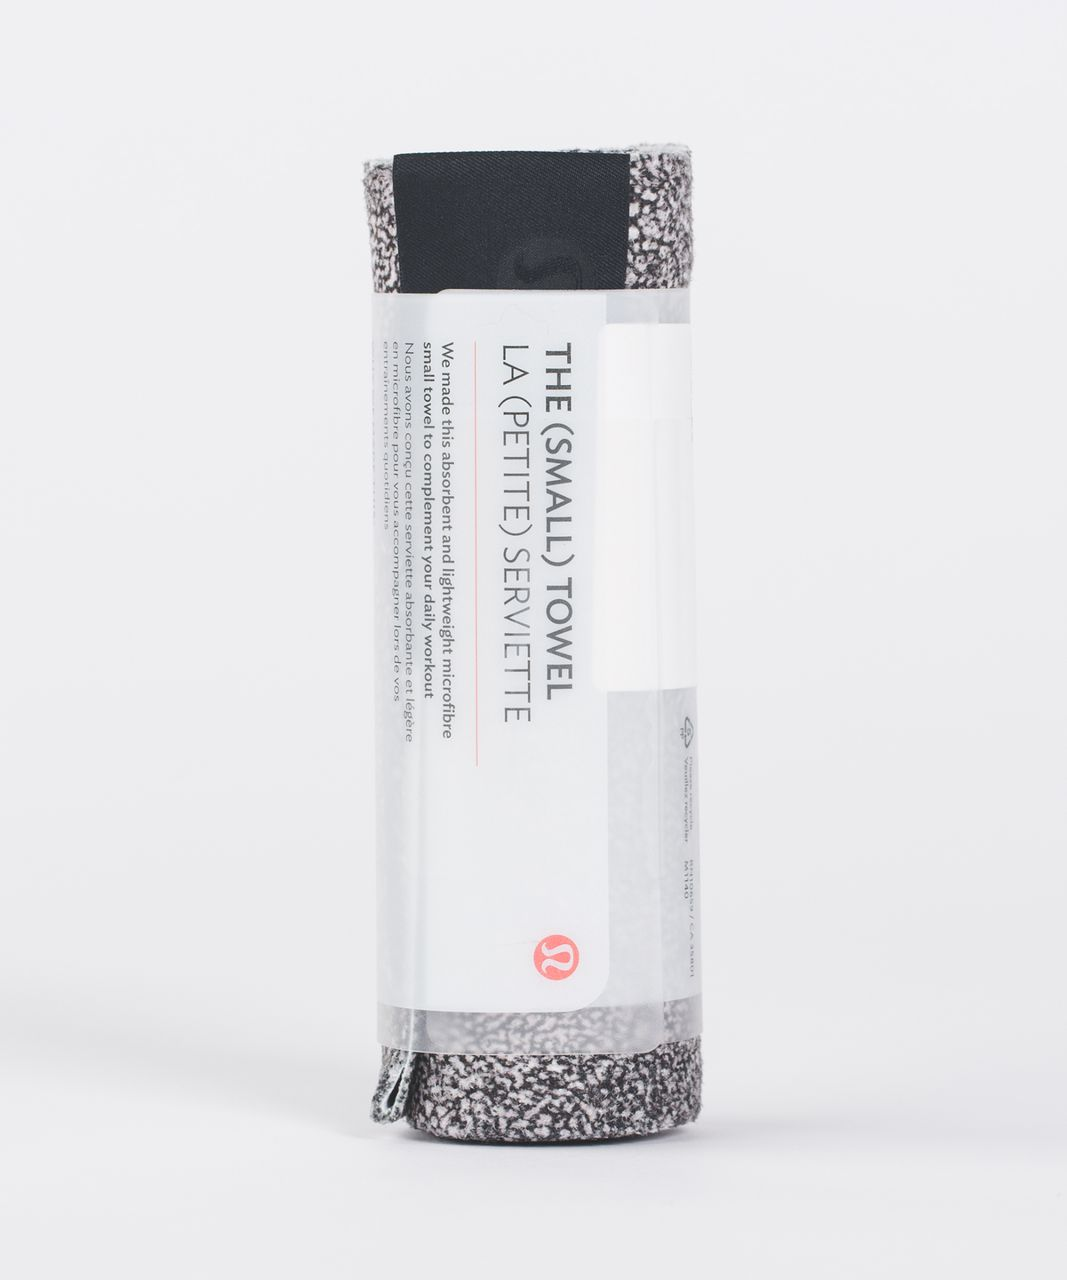 Lululemon The (Small) Towel - Sea Spray Alpine White Dark Chrome